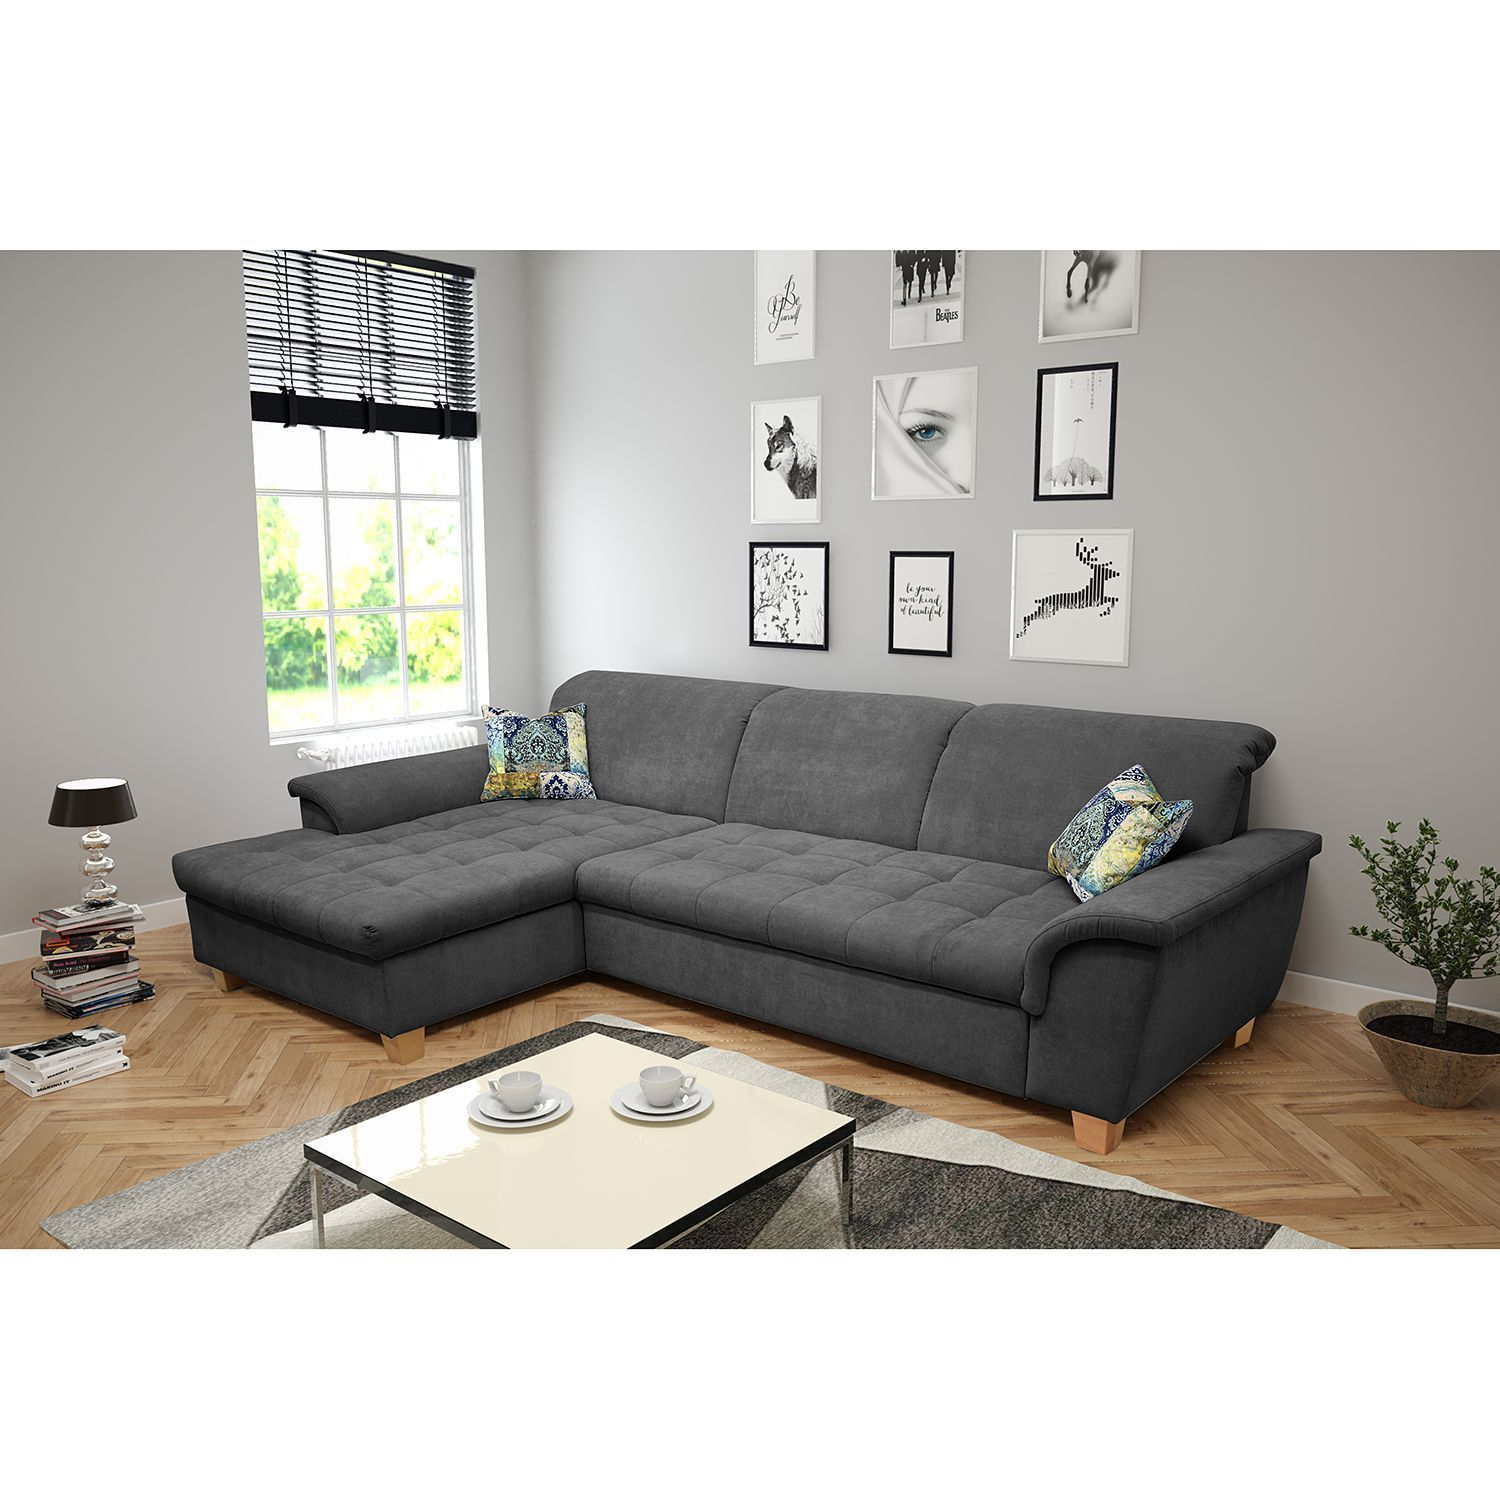 Ars Natura Ecksofa Charlo 2 Sitzer Grau Microfaser 279x81x164 Cm Mit Schlaffunktion Und Bettkasten In 2020 Furniture Design Living Room Upholstered Furniture Furniture